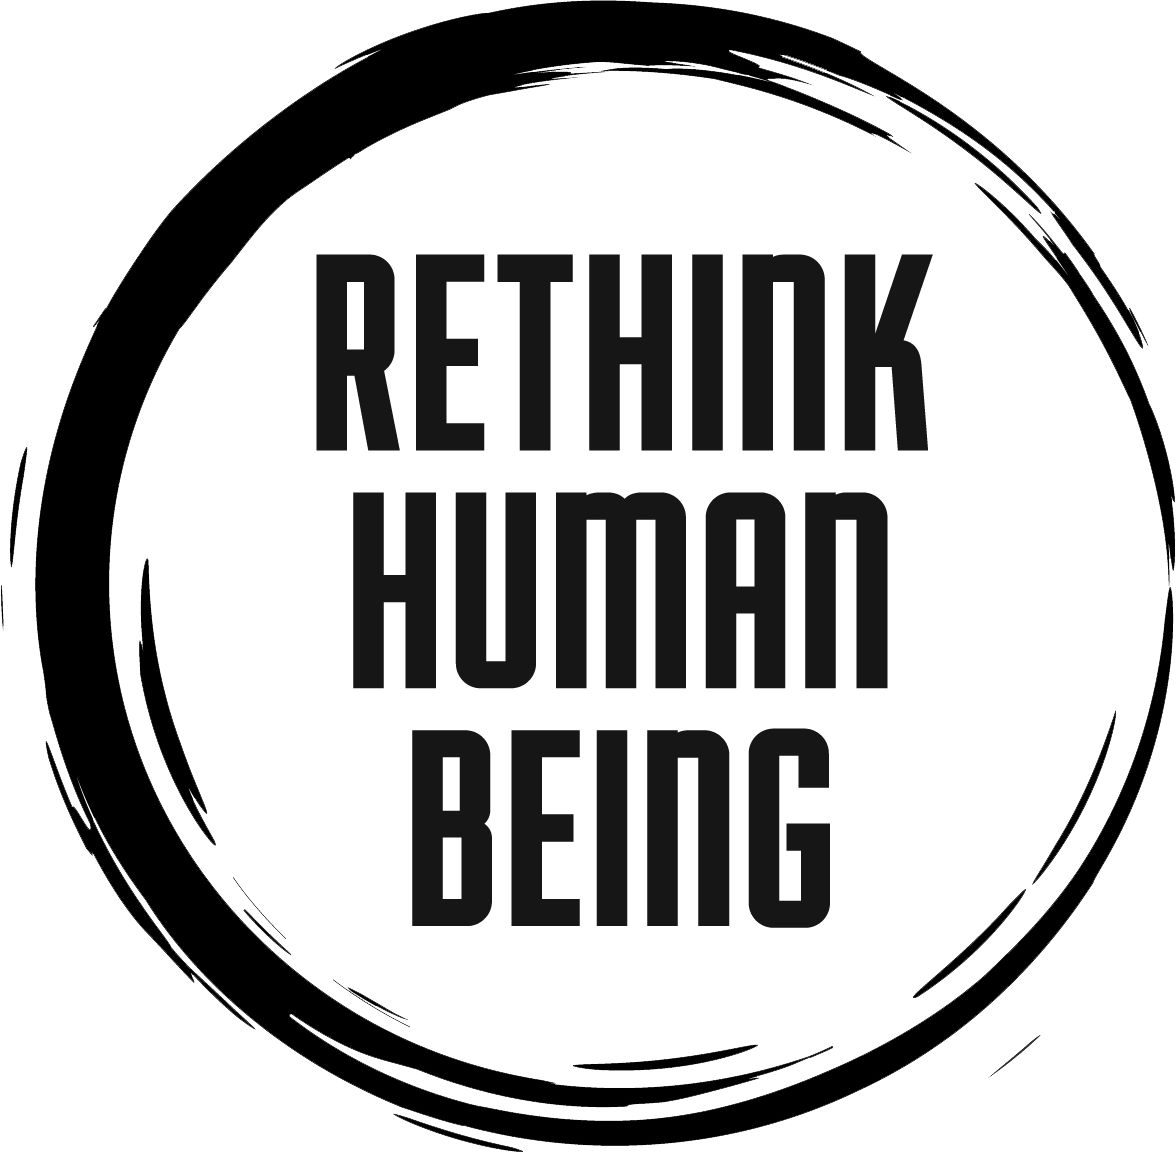 rethink human being